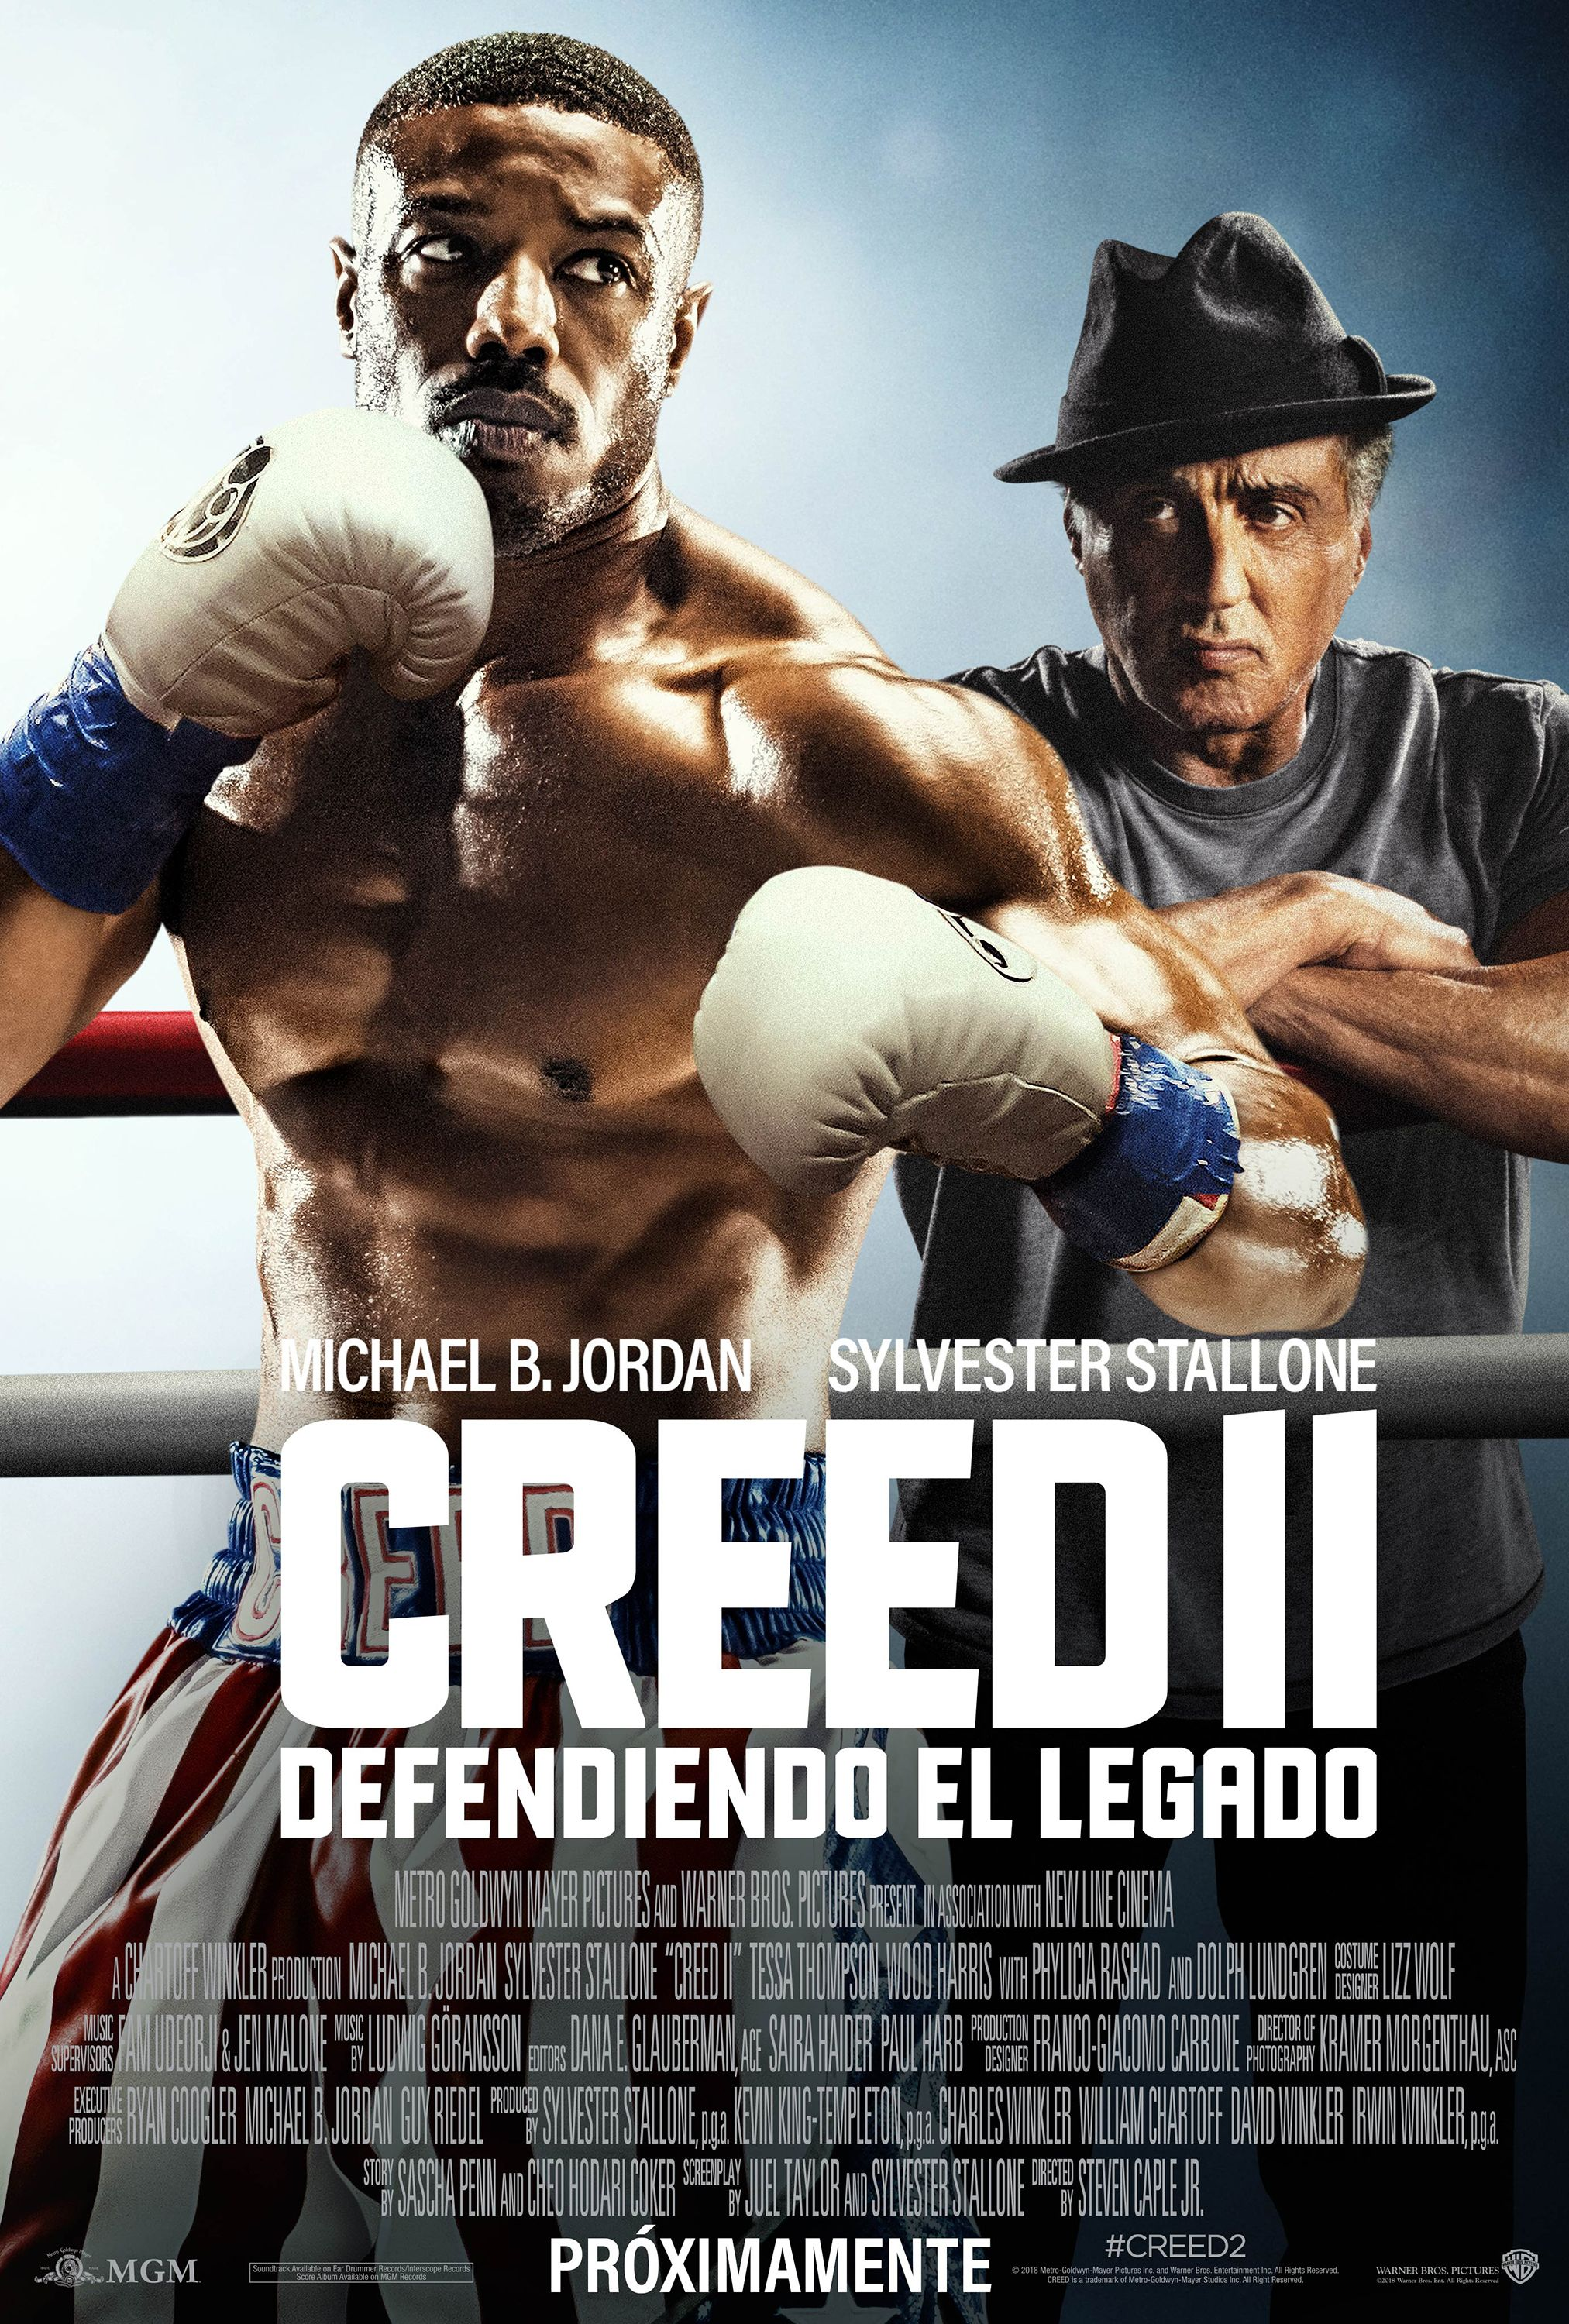 creed 2 full movie free online